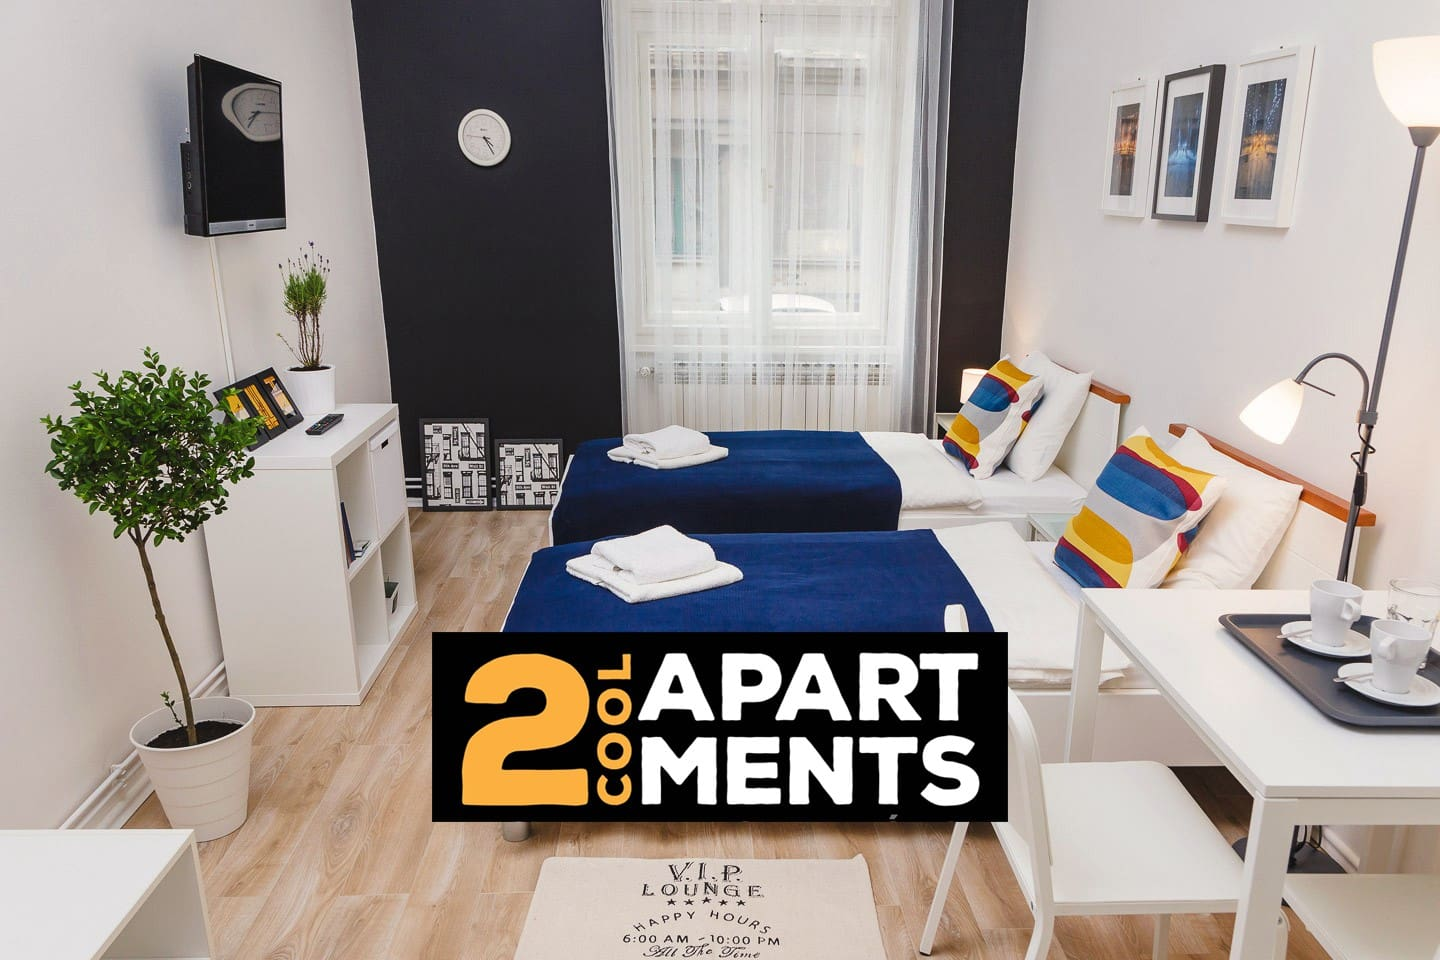 Studio apartment in Zagreb, city center, 1st floor, high ceilings, kitchen, bathroom, free parking at request